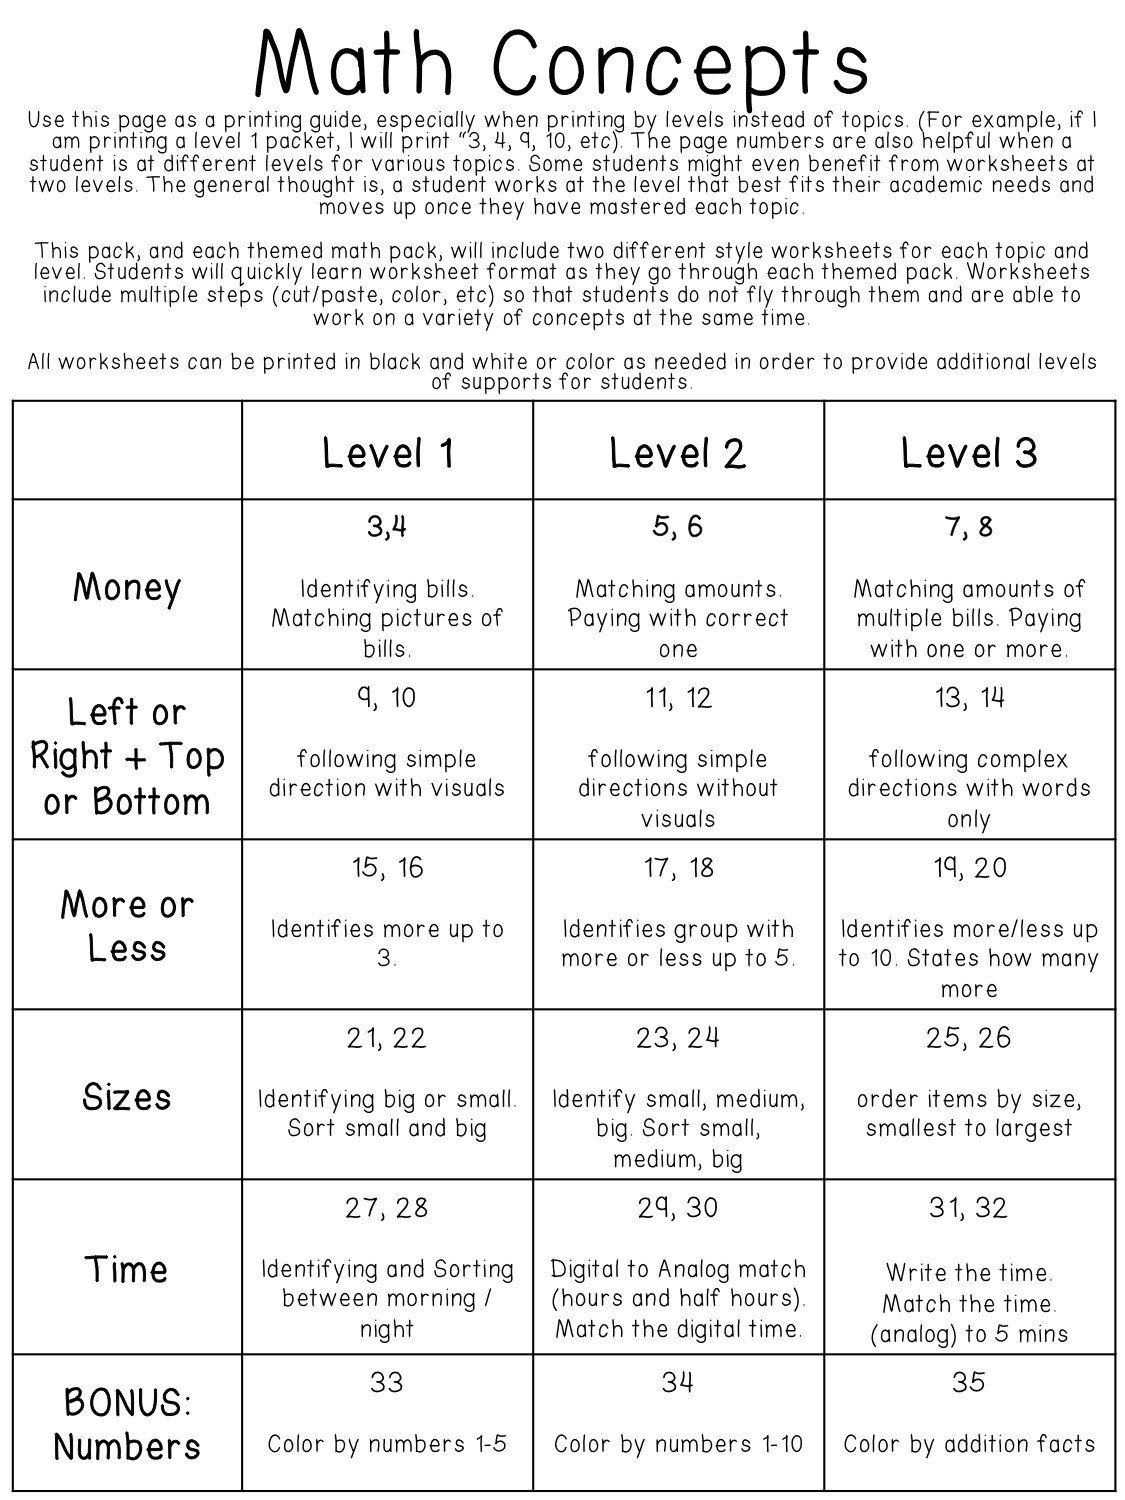 20 Vocational Skills Worksheet